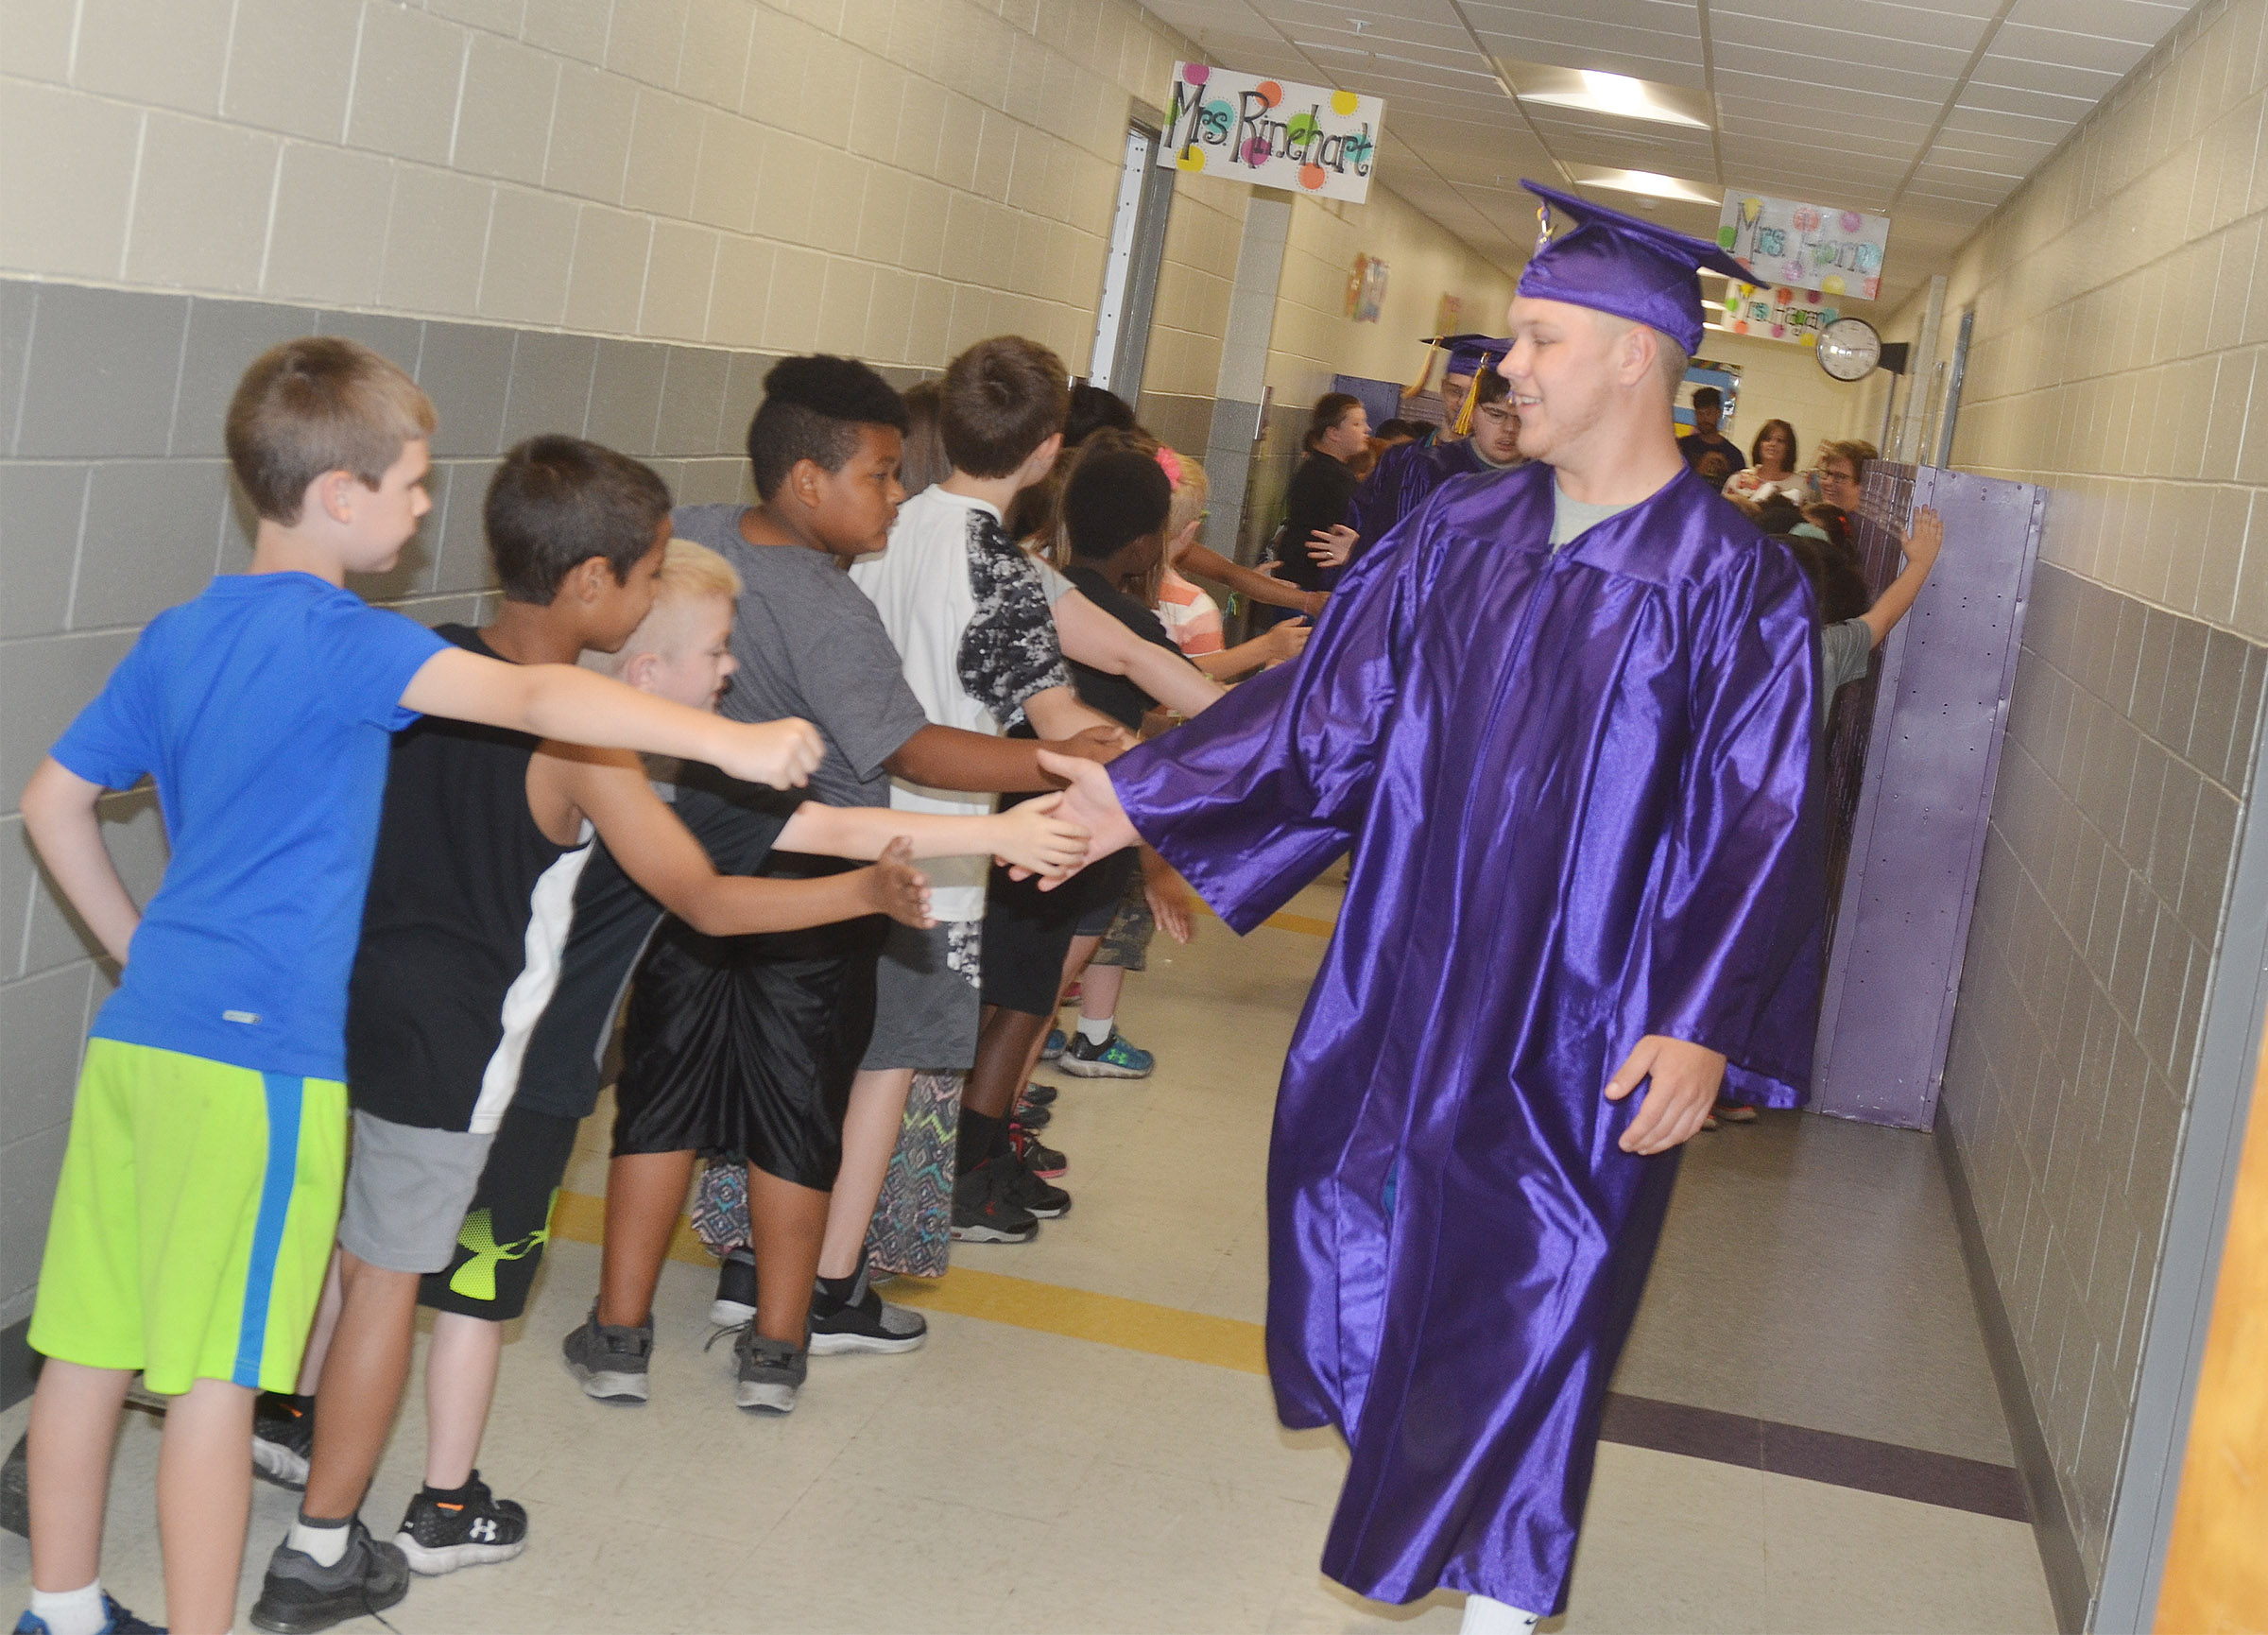 CHS senior Noah Wagers and his classmates walk down the hallways at CES.